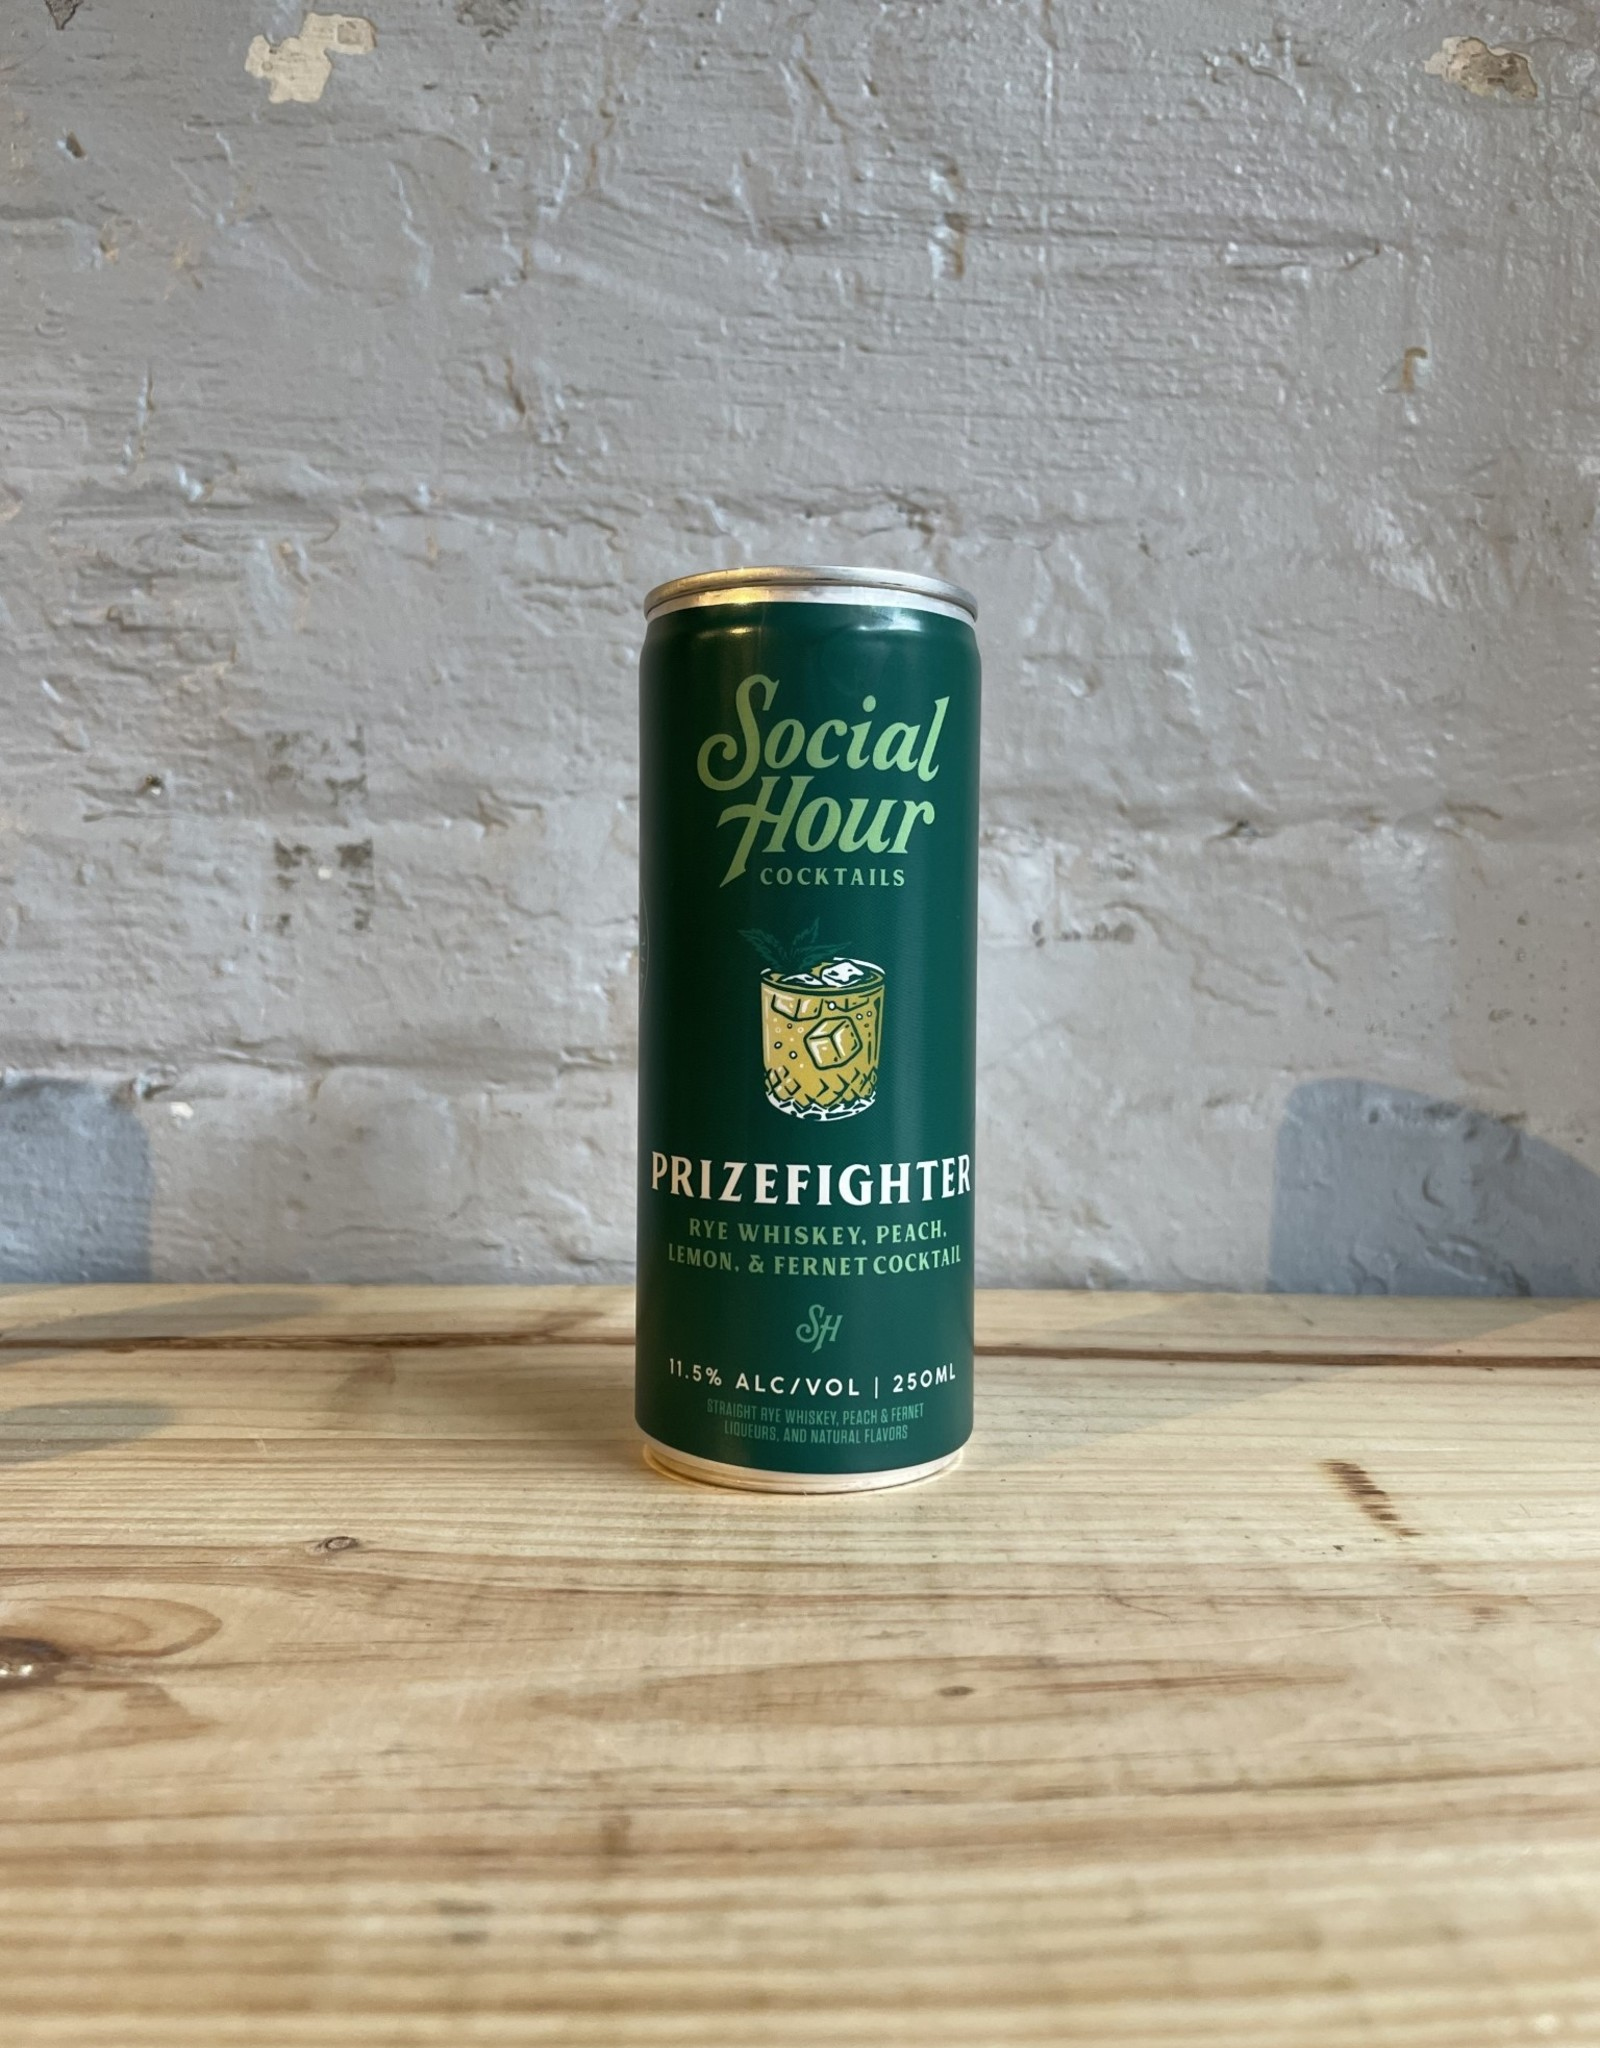 Social Hour Prizefighter Cocktail - Brooklyn, NY (250ml)